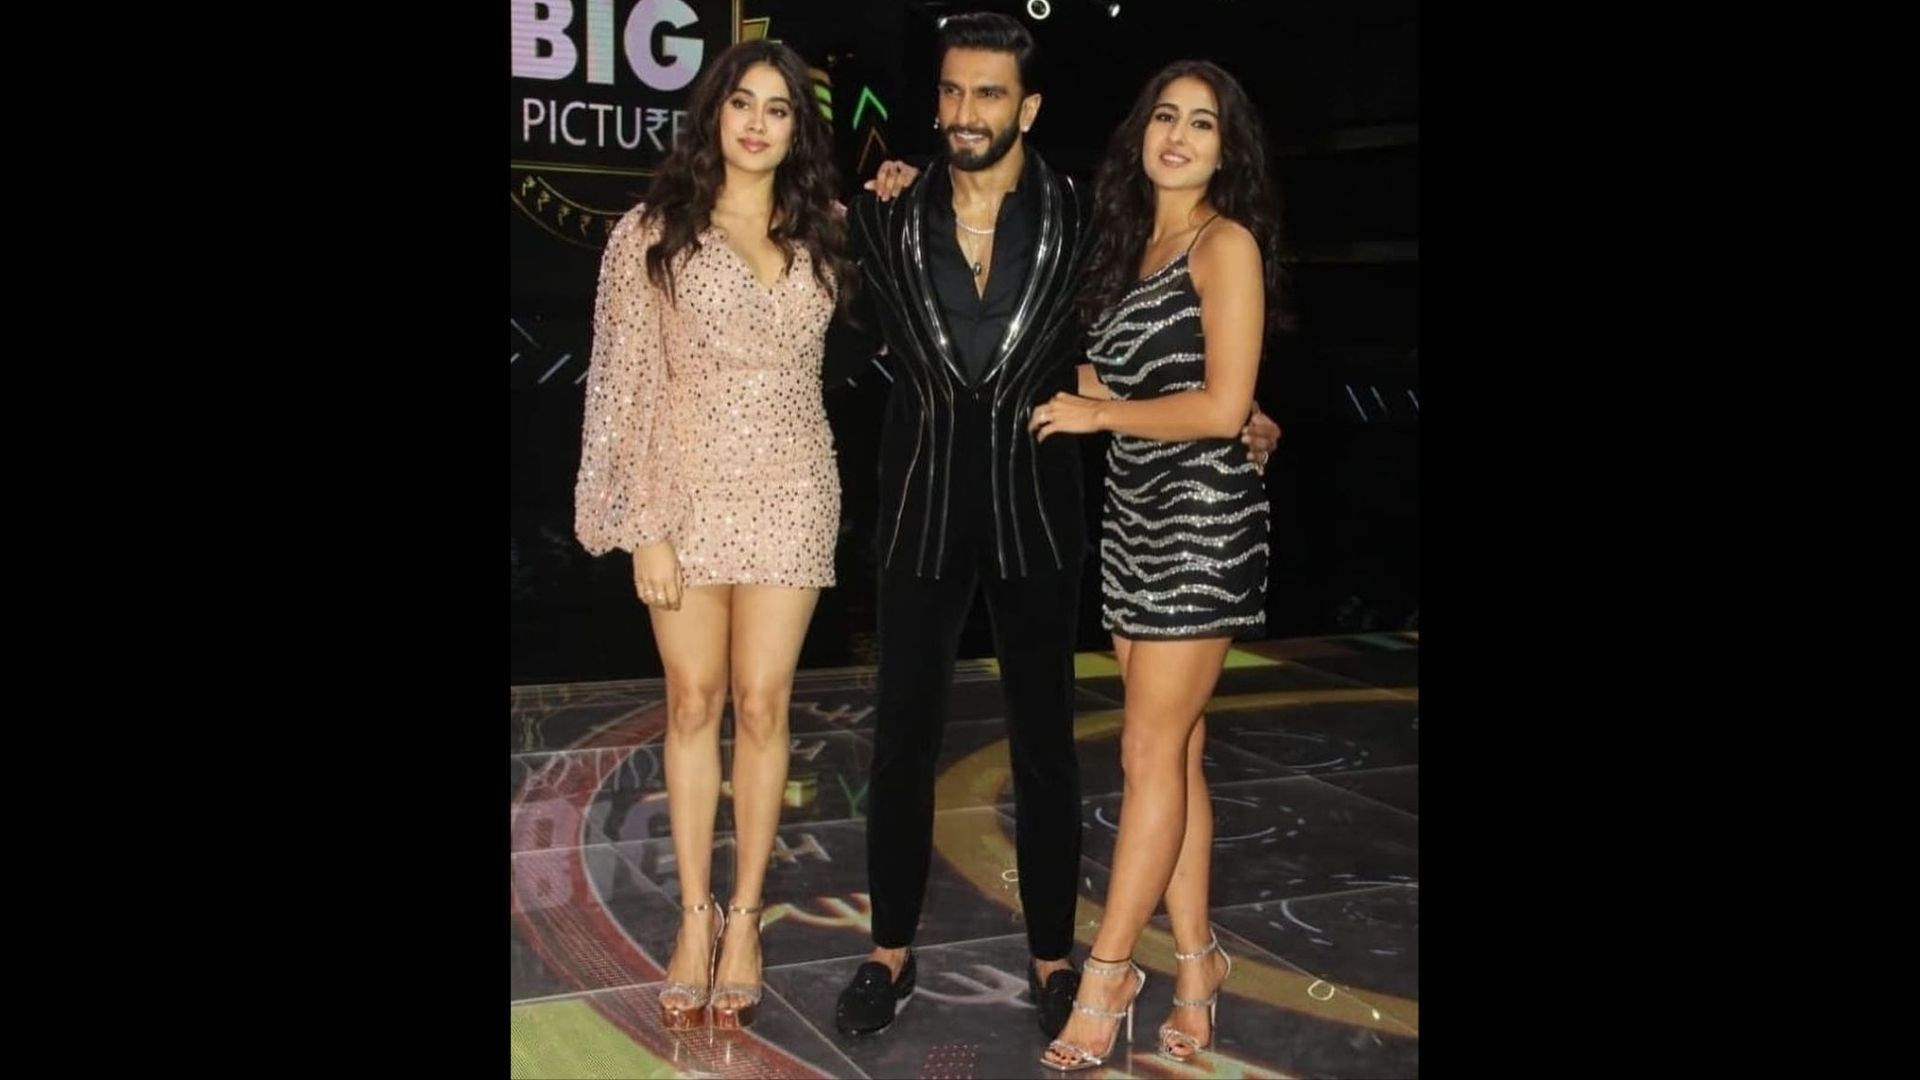 The Big Picture: Sara Ali Khan And Janhvi Kapoor Larking Around On The Sets Of Ranveer Singh's New Show Will Leave You In Amazed